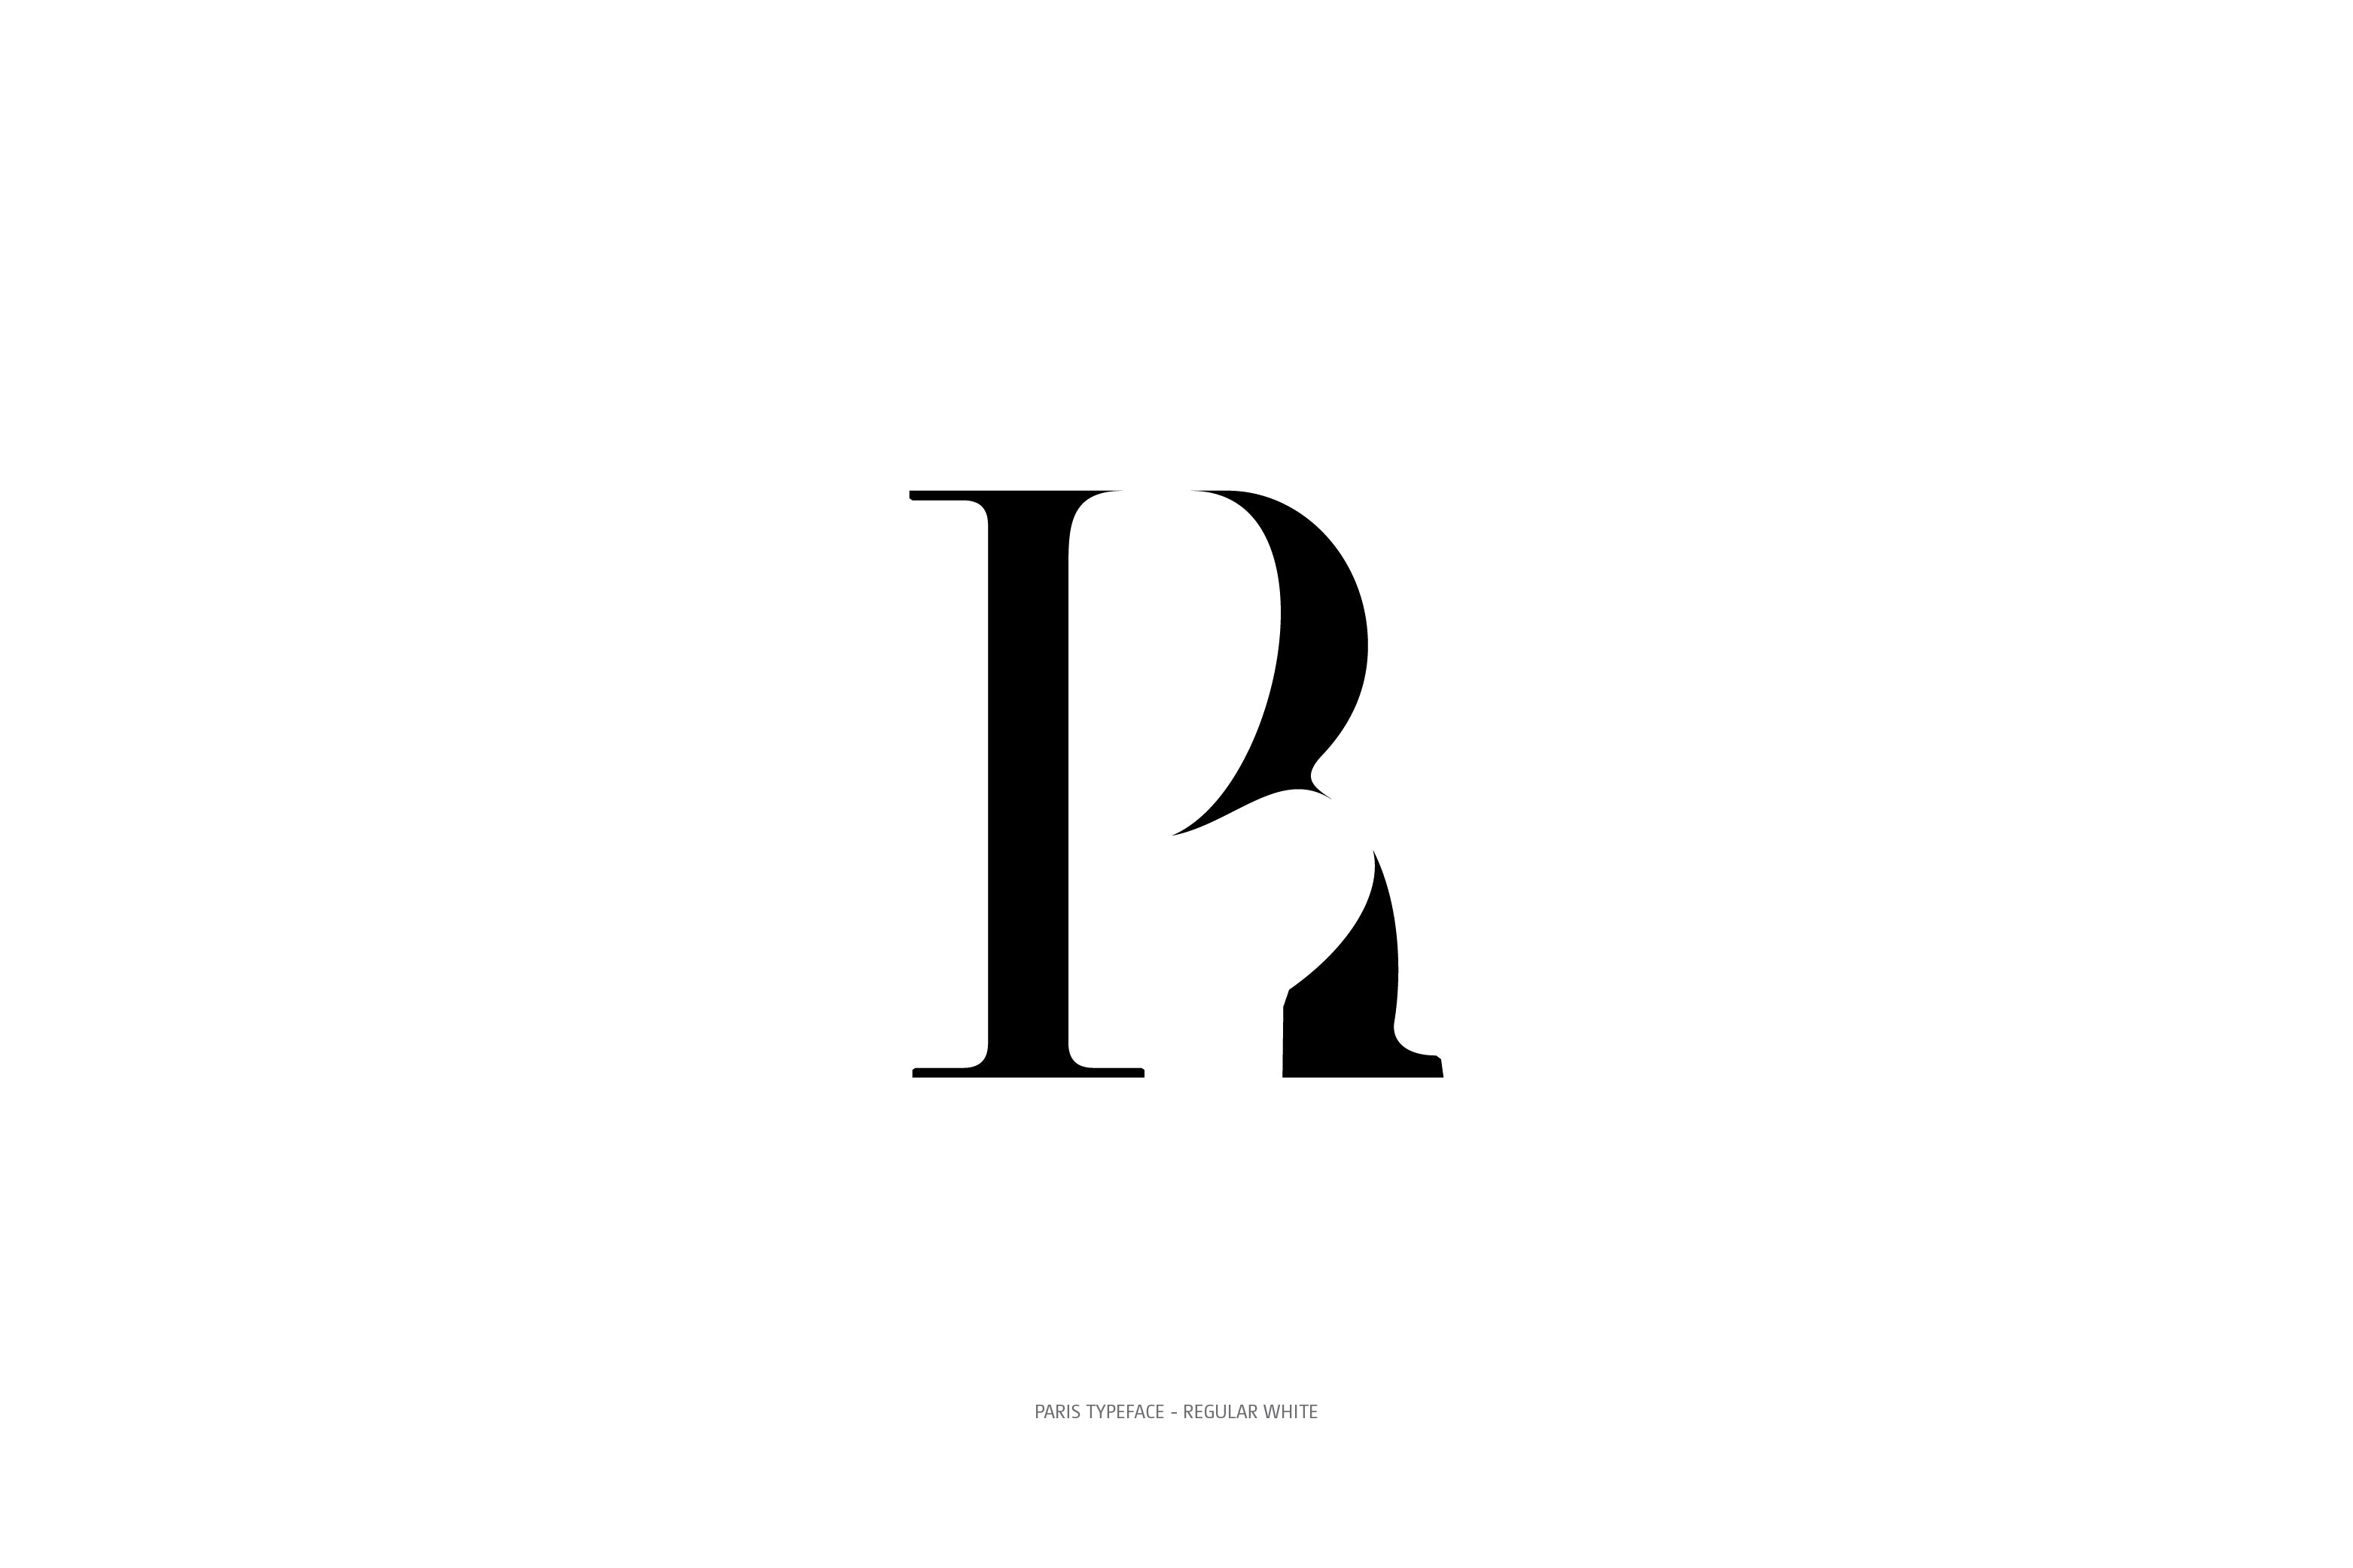 Paris Typeface Regular White R